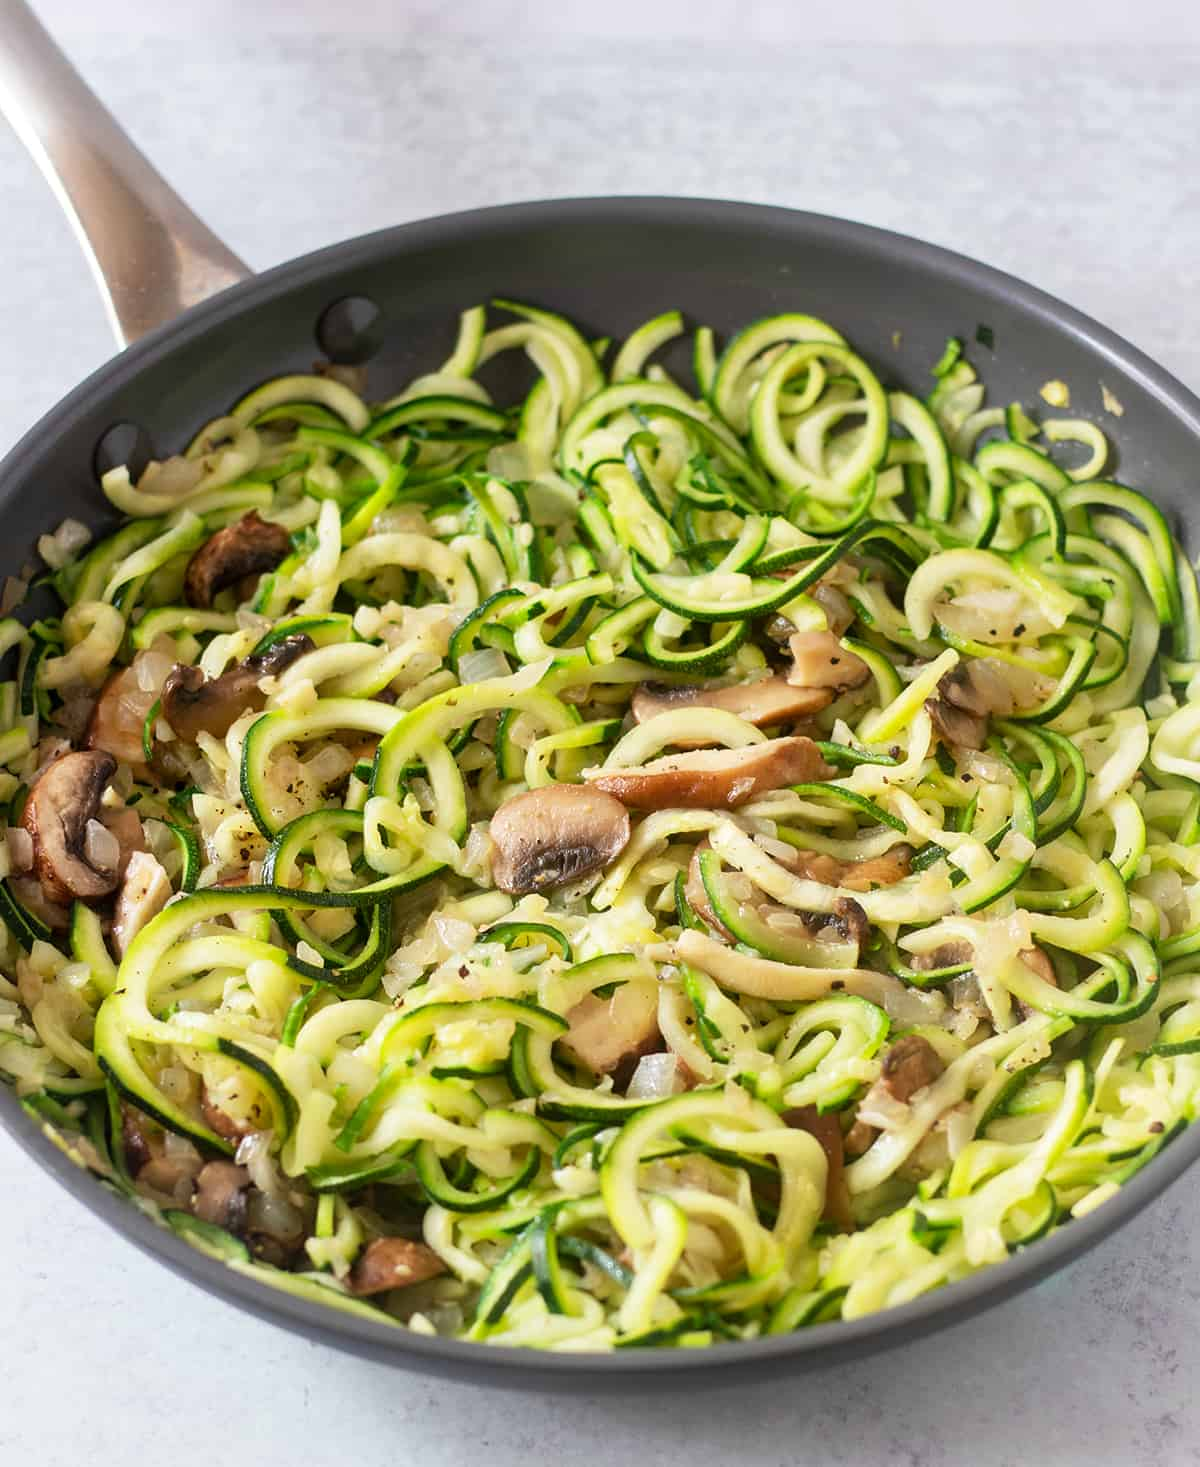 Zucchini noodles in saute pan